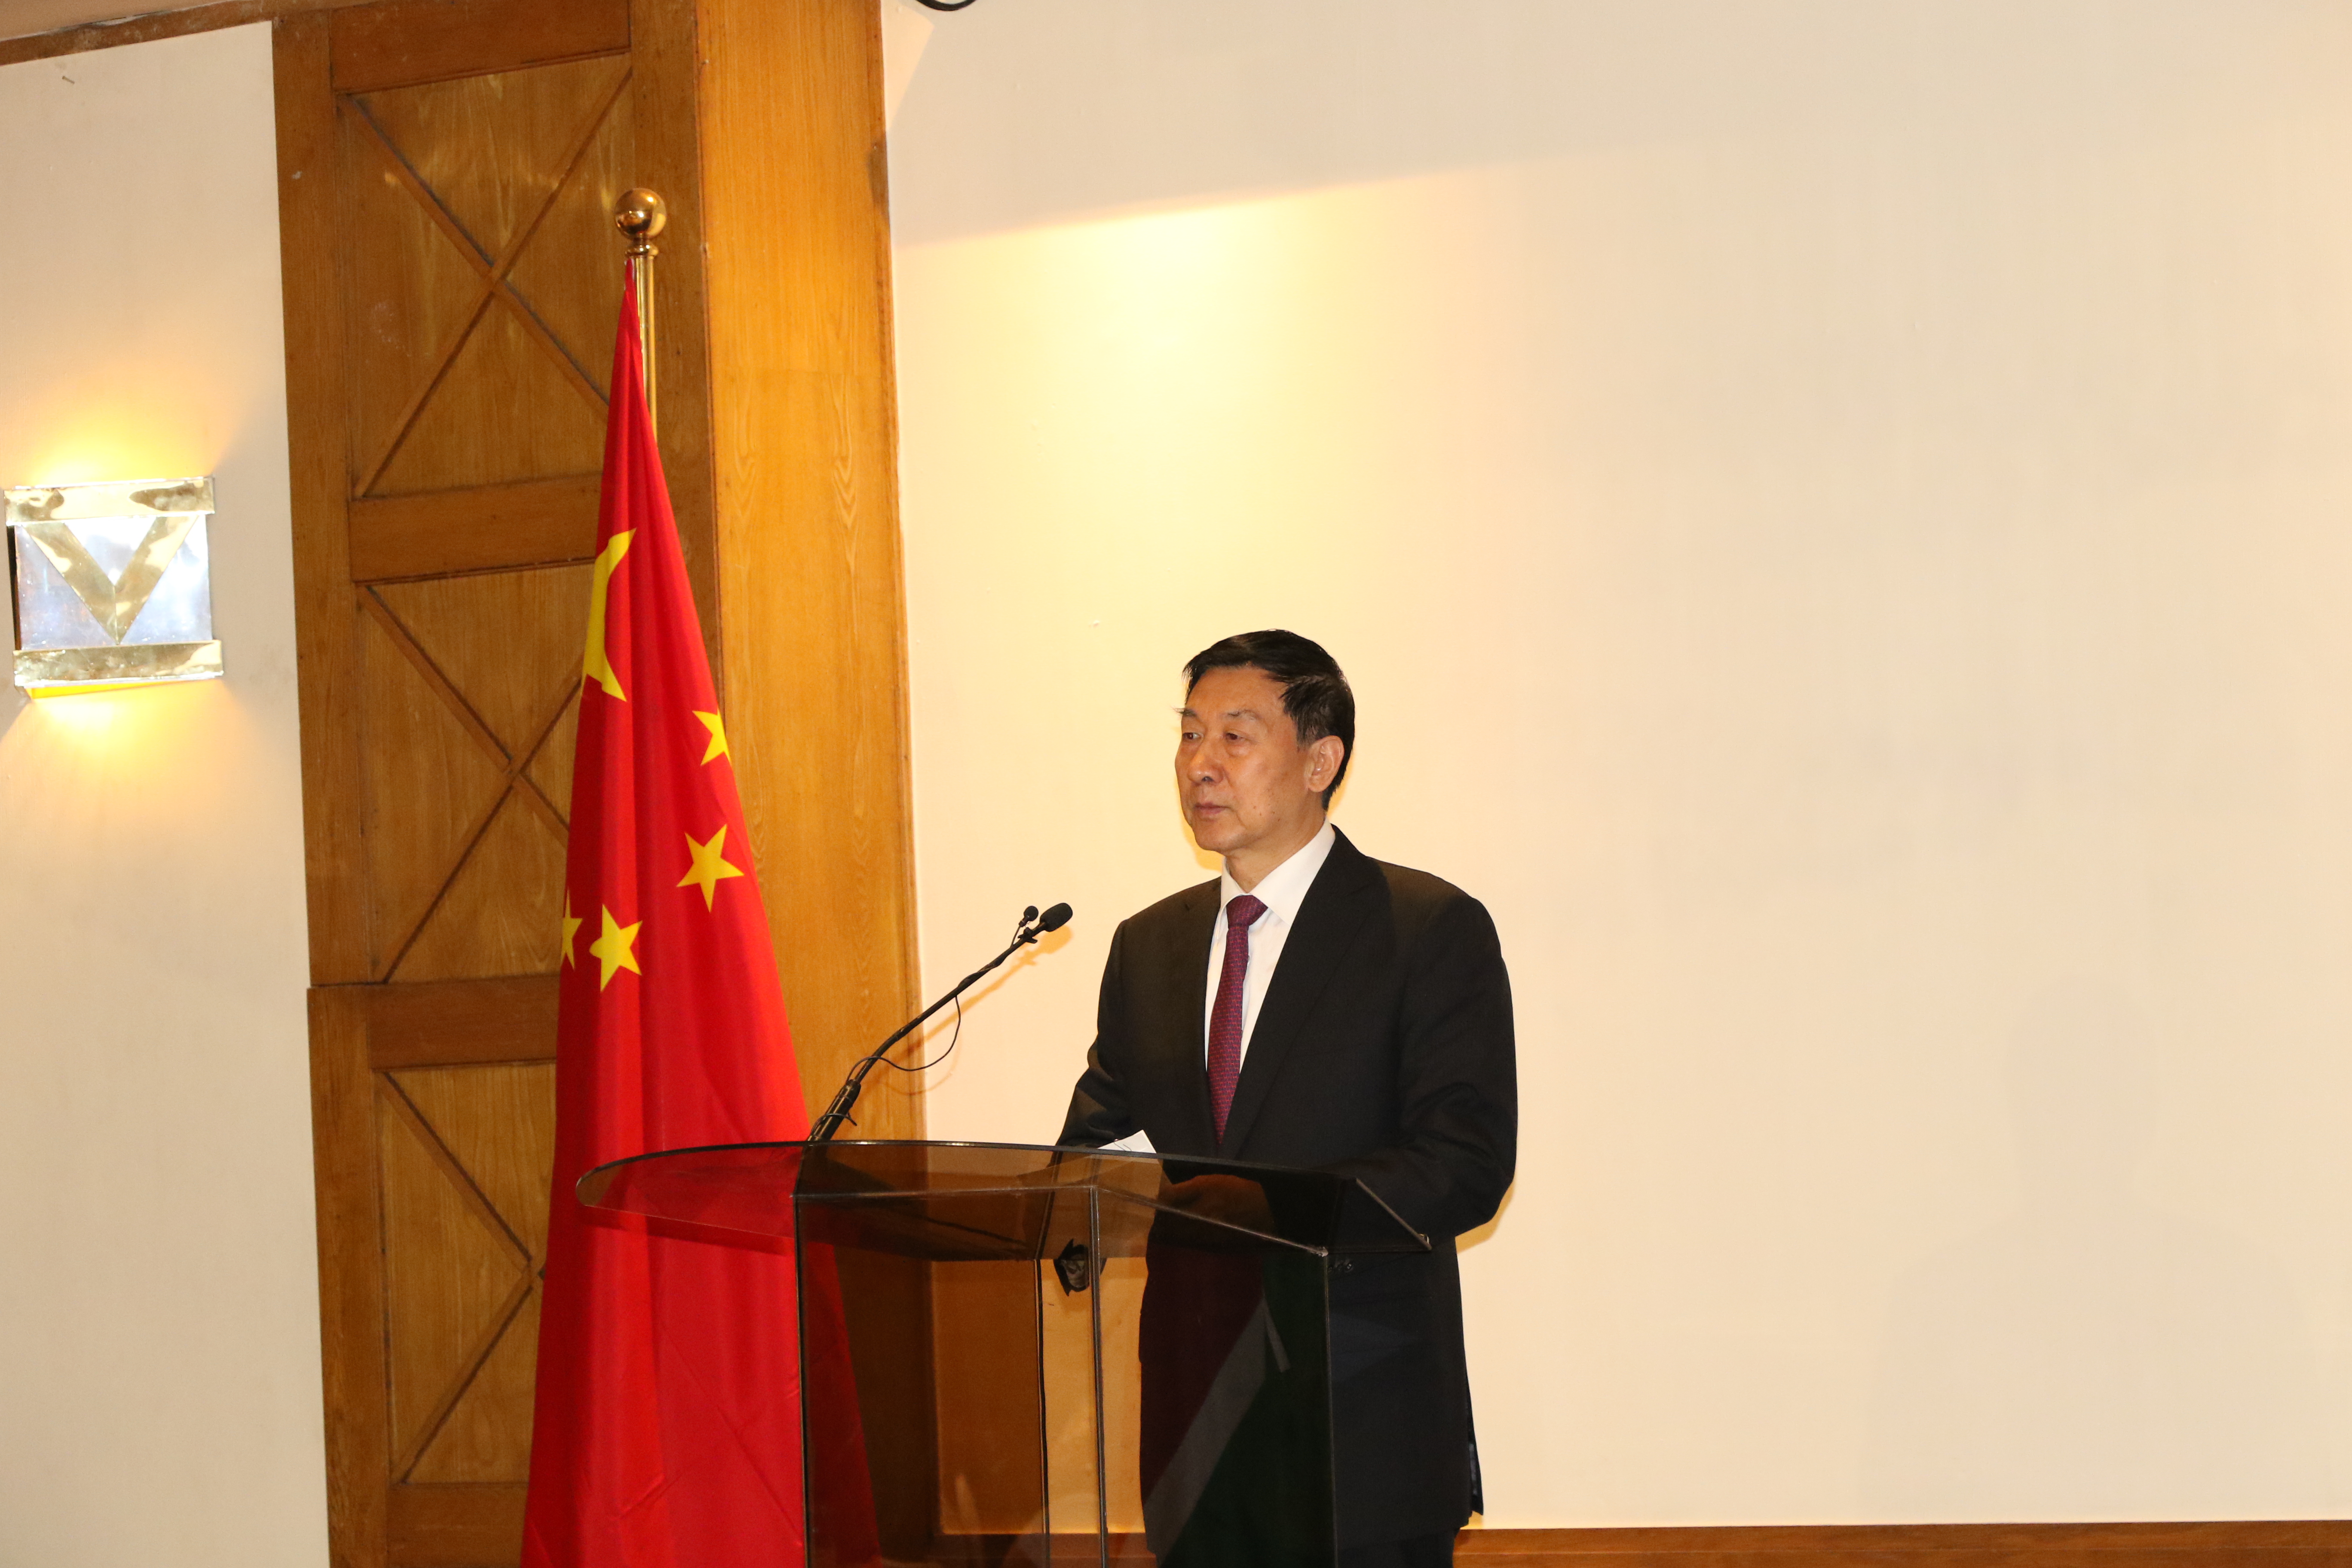 State Councilor Wang Yong of the People's Republic of China delivers a speech